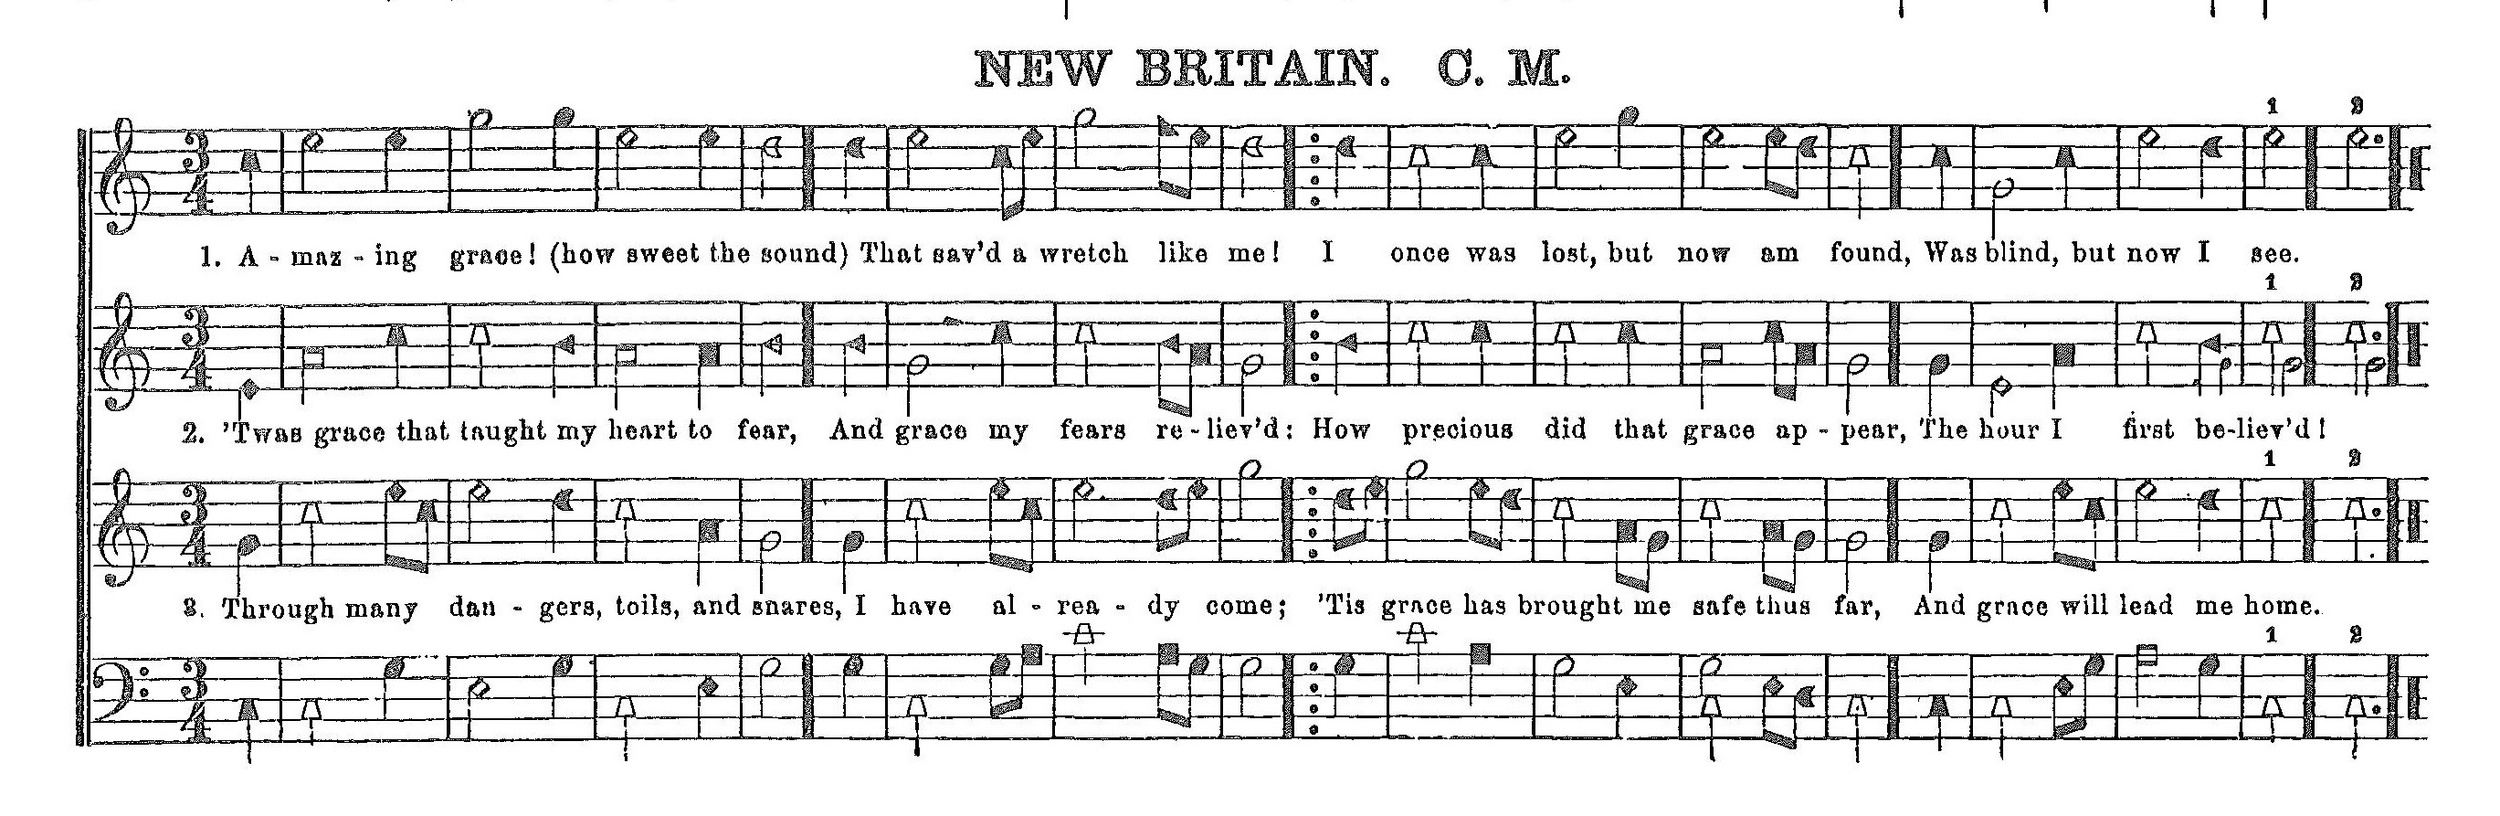 Shape notes are a system of notation in which different tones have different shapes. Shape notes became popular in the 19th century as a teaching method in singing schools. Two of the earliest manuals to include shape notes were   The Easy Instructor  (1801) by William Smith,and  The Musical Primer  (1803) by Andrew Law.